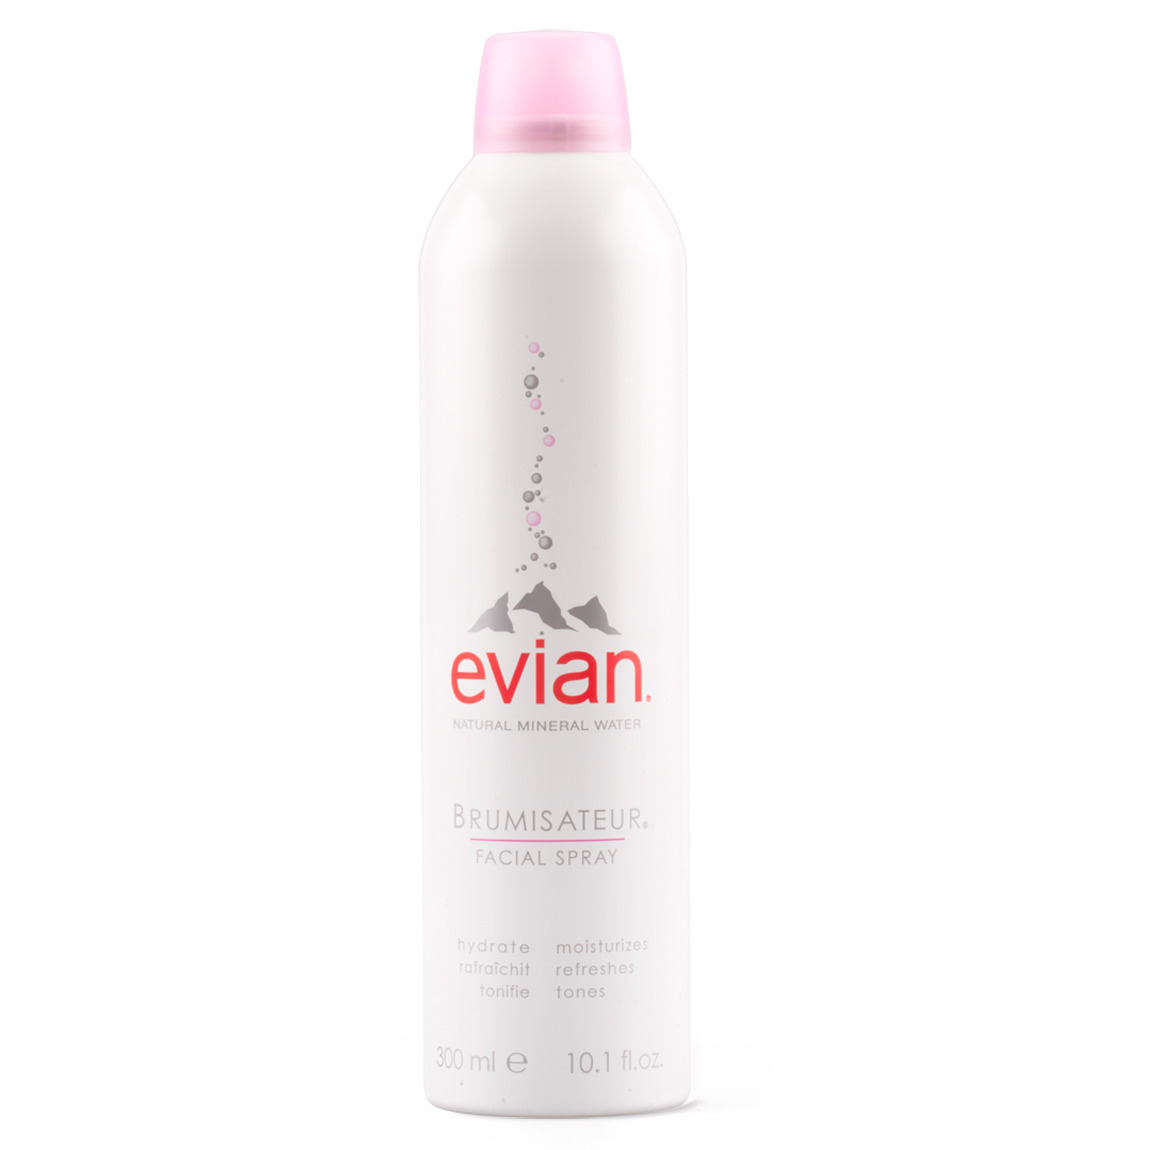 Evian Mineral Water Facial Spray 10 oz. product smear.